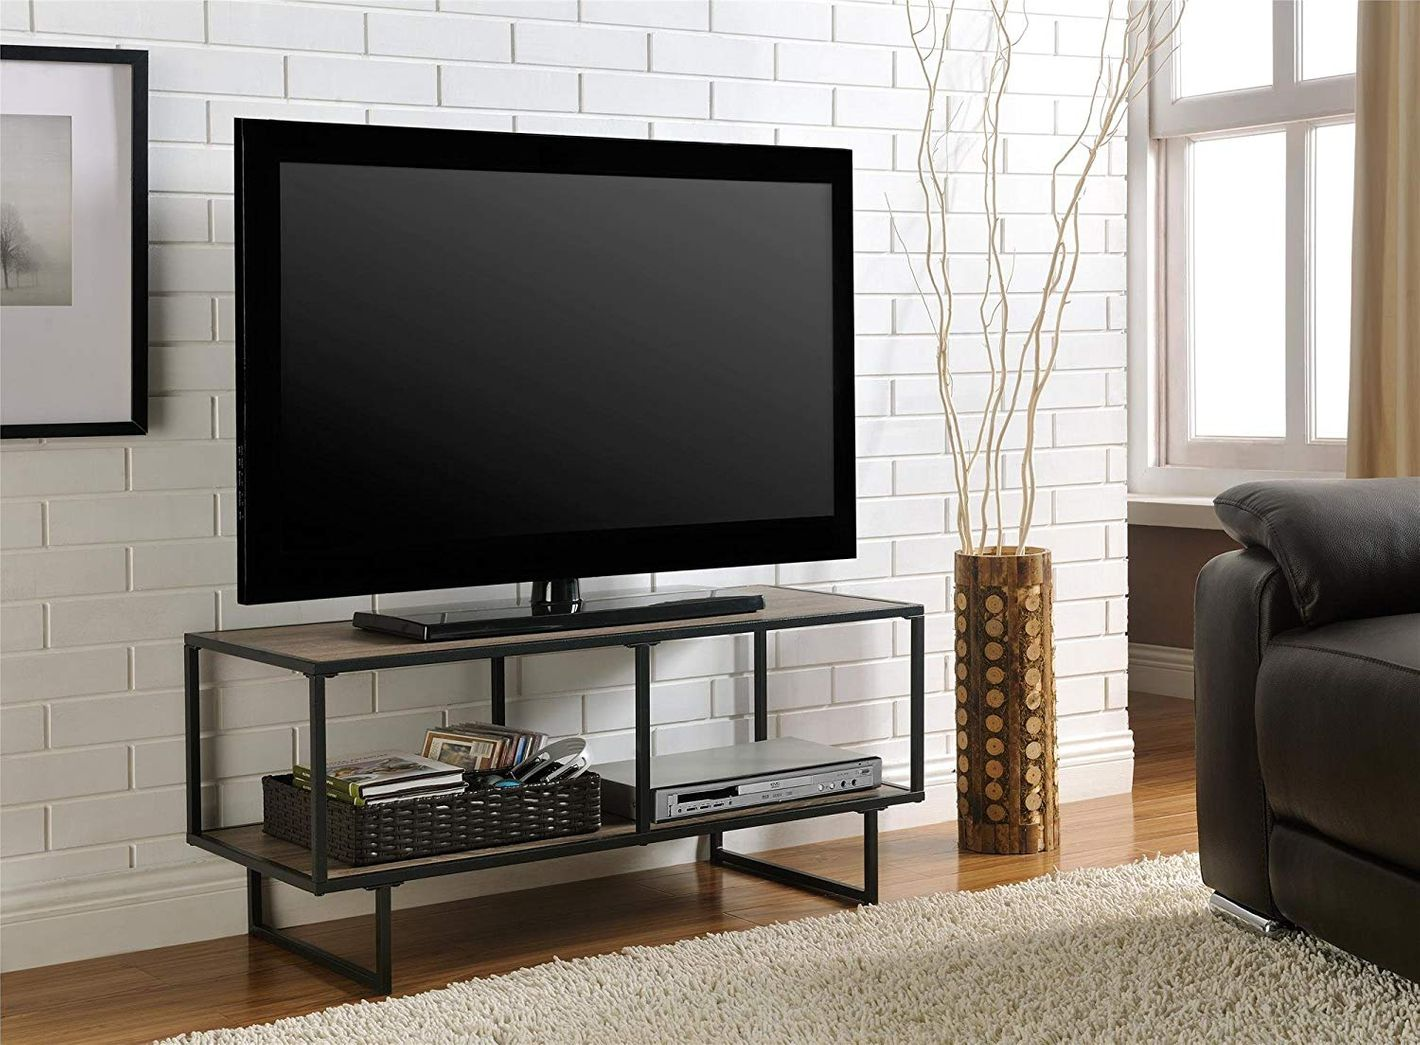 Ameriwood Home Emmett Tv Stand Coffee Table For Tvs Up To 42 Weathered